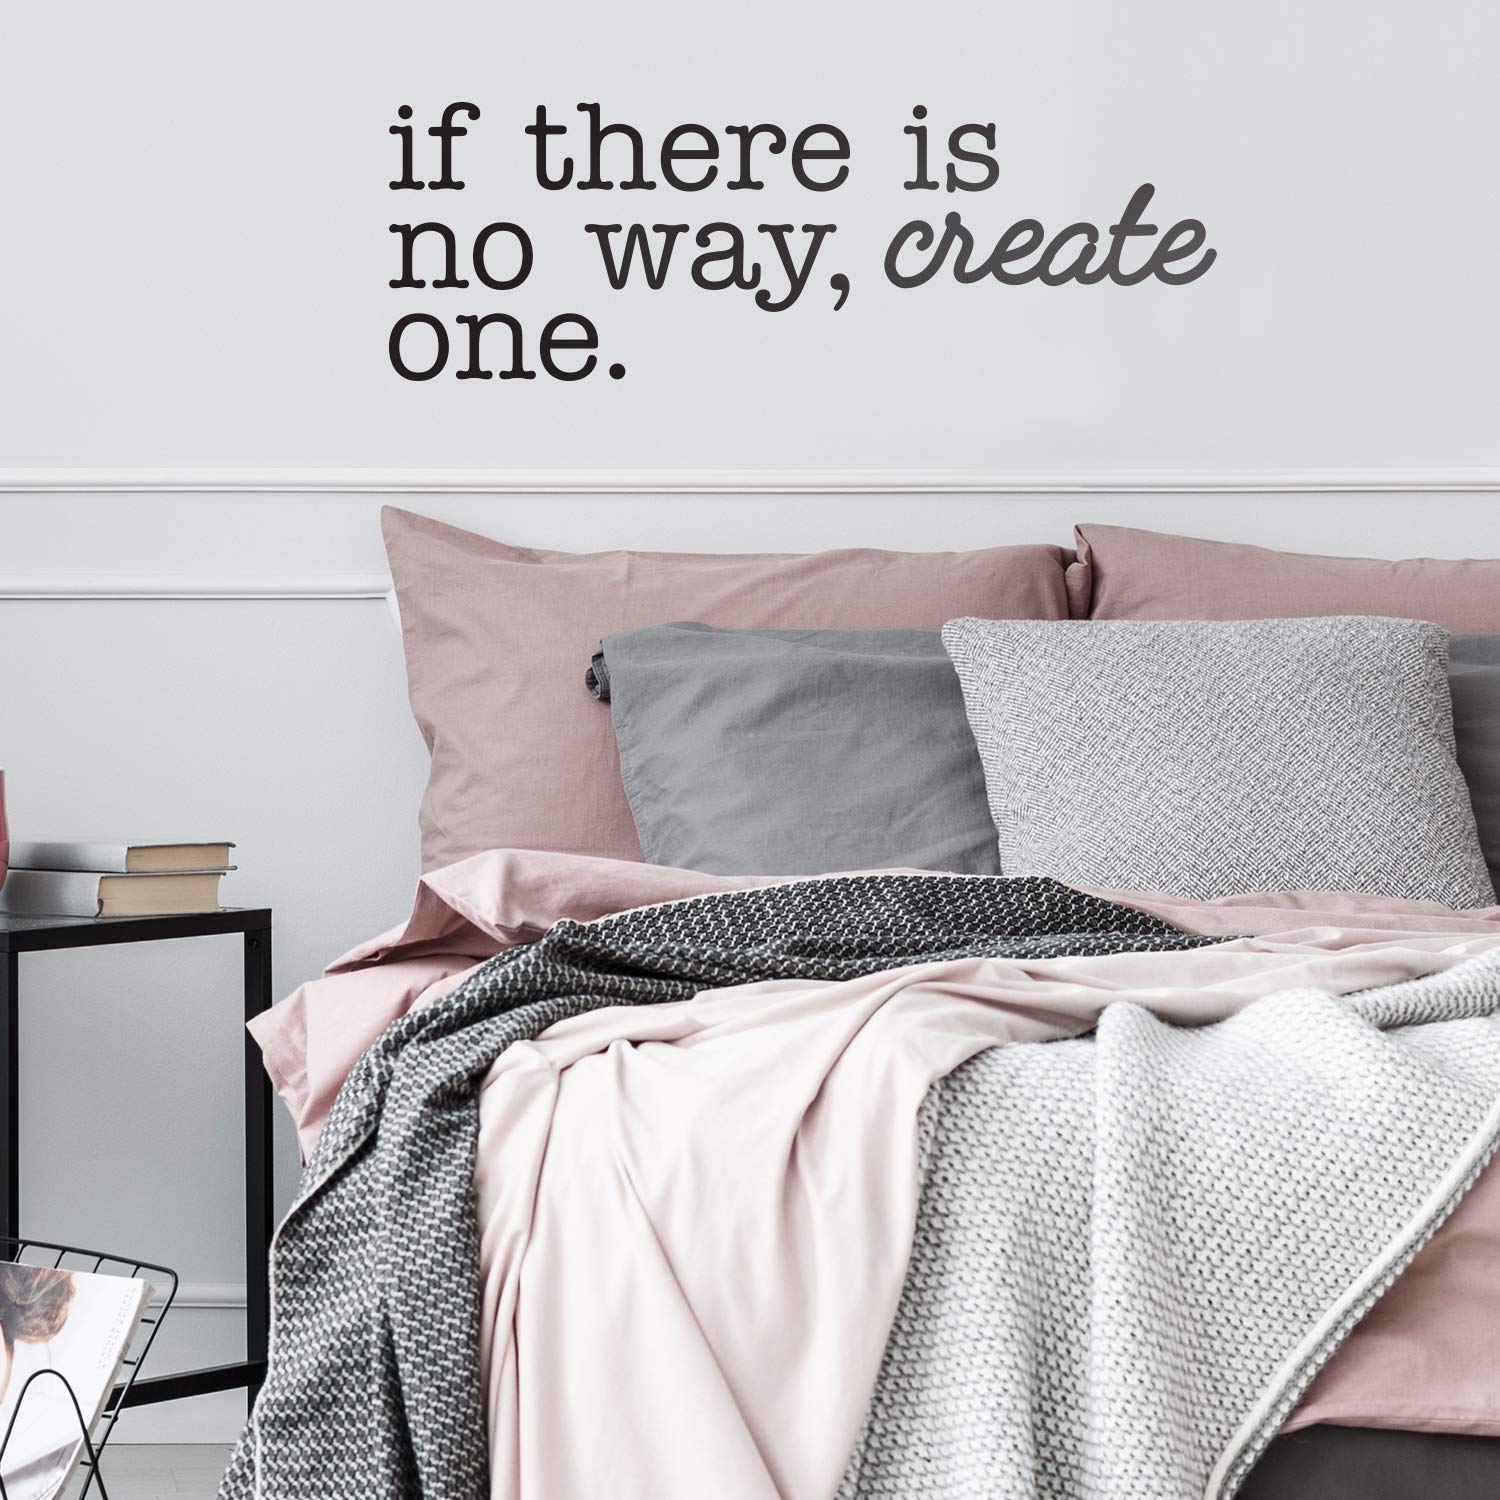 Modern Inspirational Life Quotes for Home Bedroom Living Room If There is No Way Create One Positive Work Office Apartment Decoration Vinyl Wall Art Decal 10.5 x 31